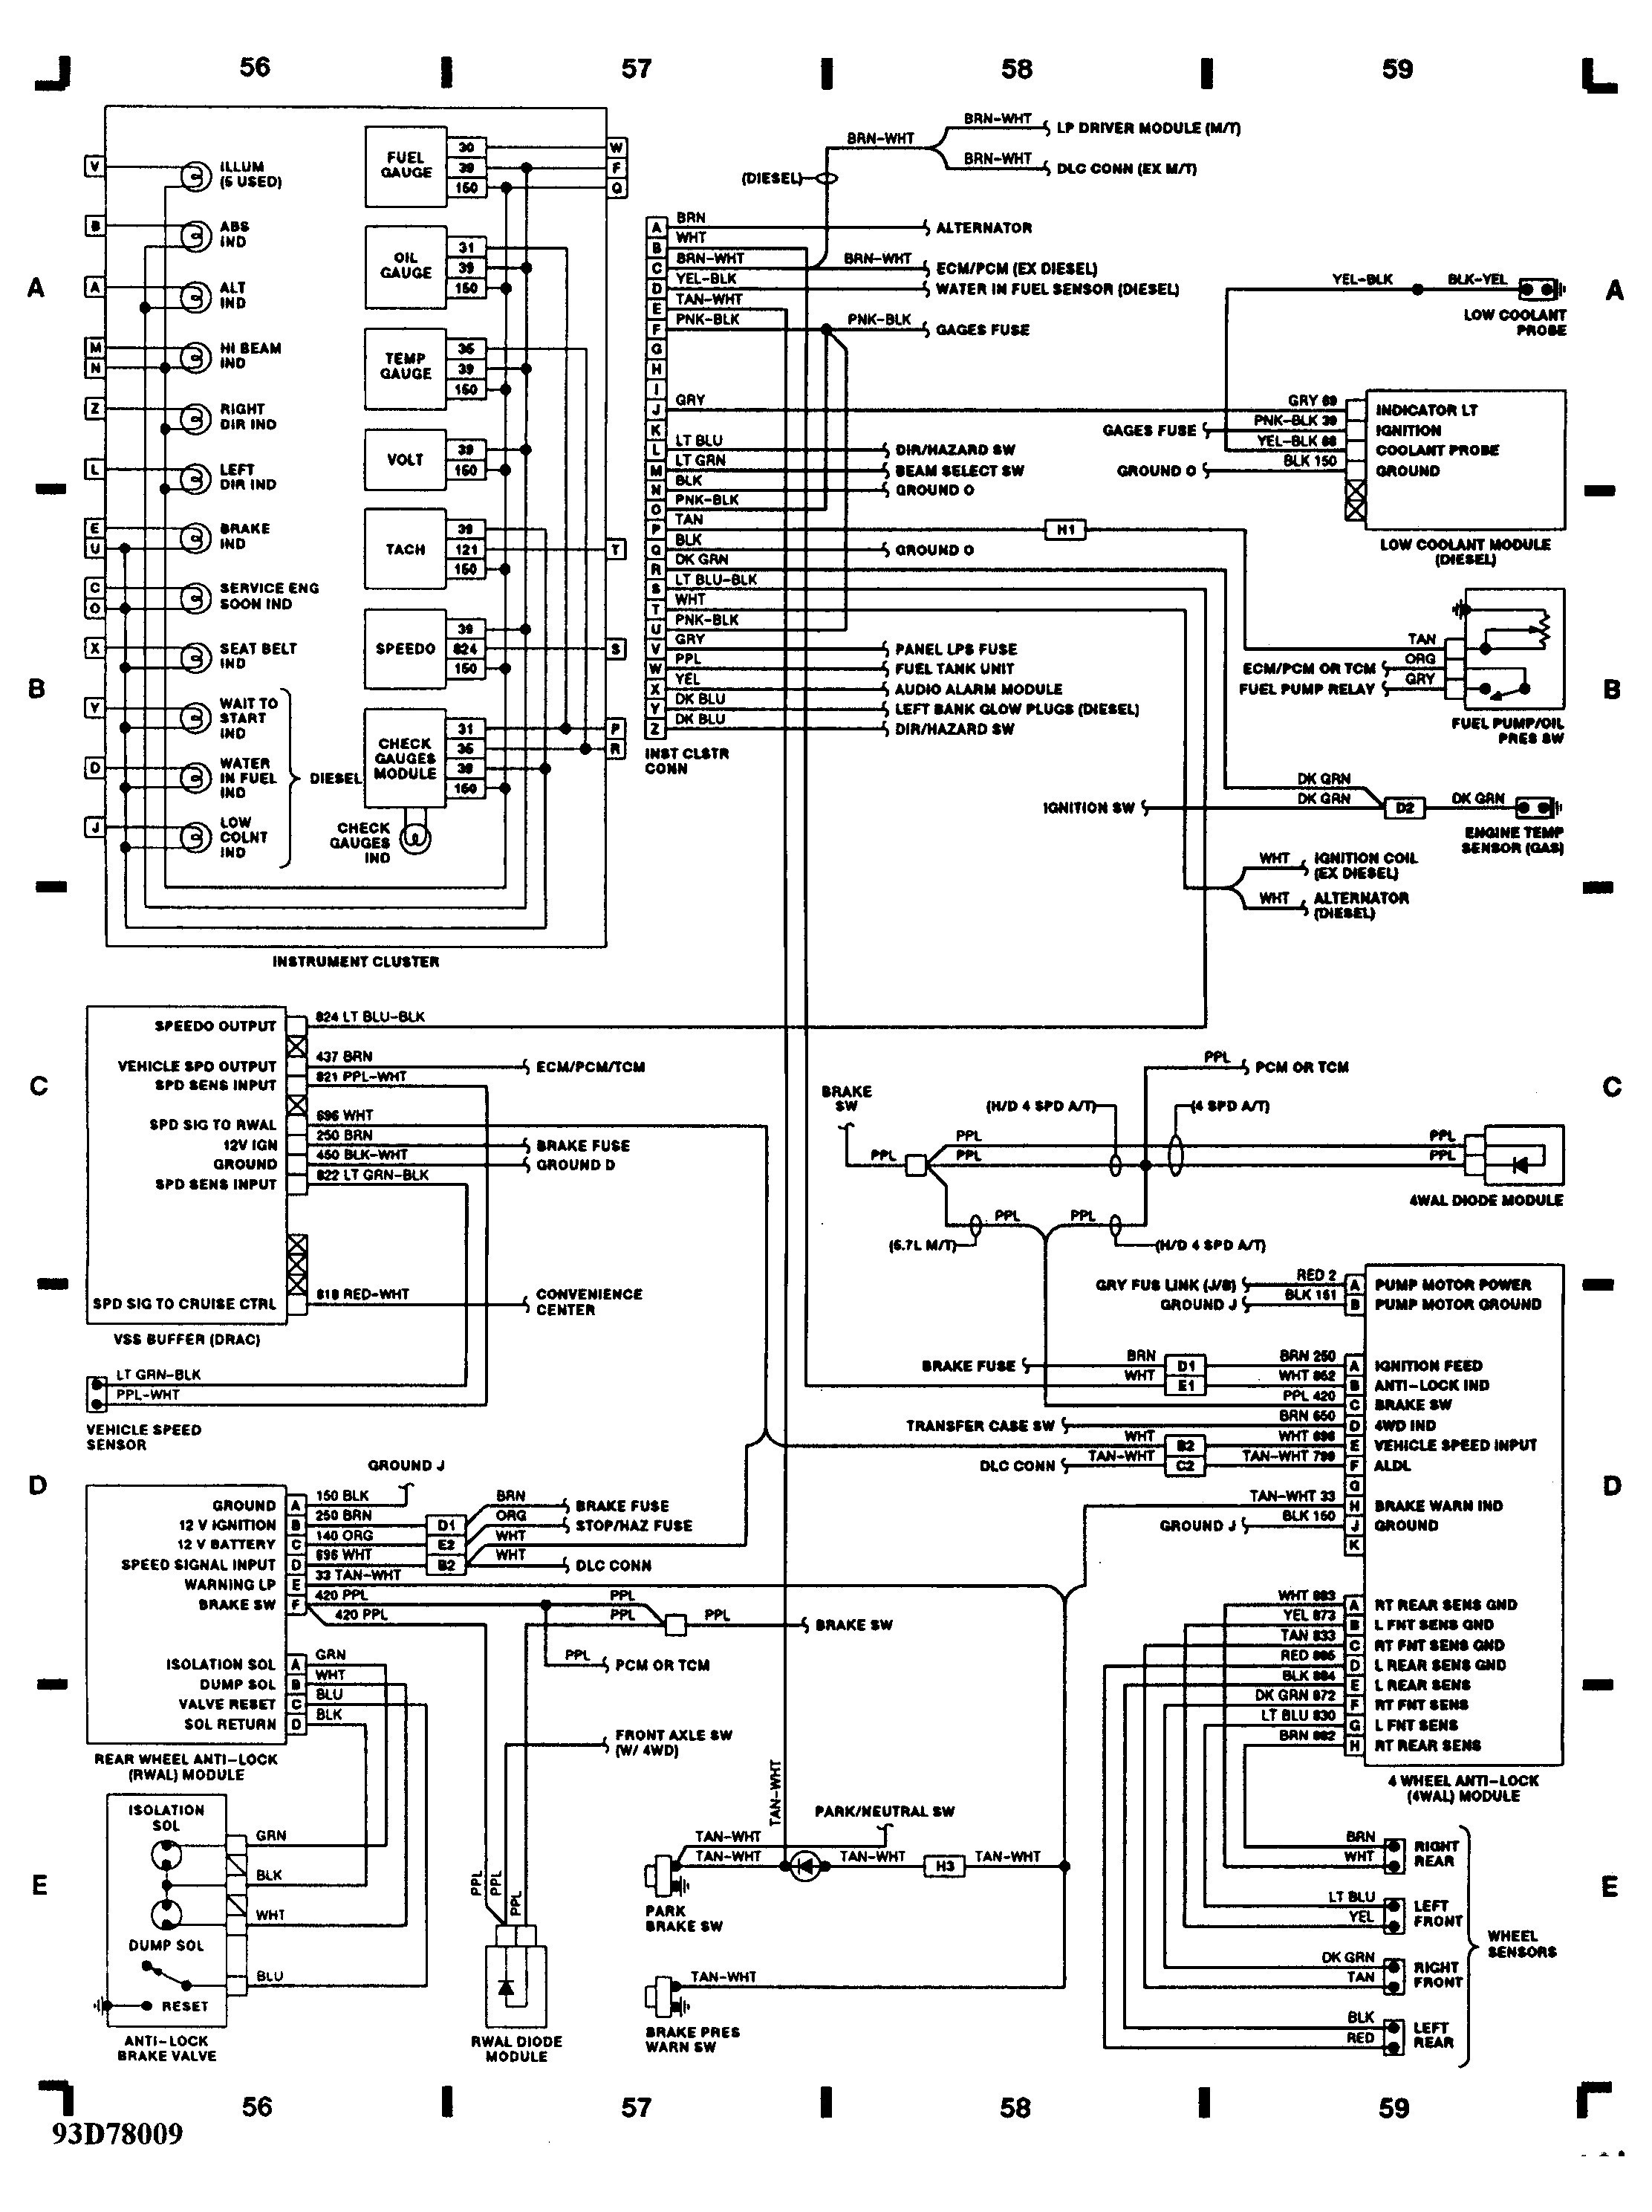 5 3 liter vortec engine diagram my wiring diagram rh detoxicrecenze com 2000 Chevy Silverado 5 3 Engine Diagram 01 Chevy 5 3 Engine Diagram